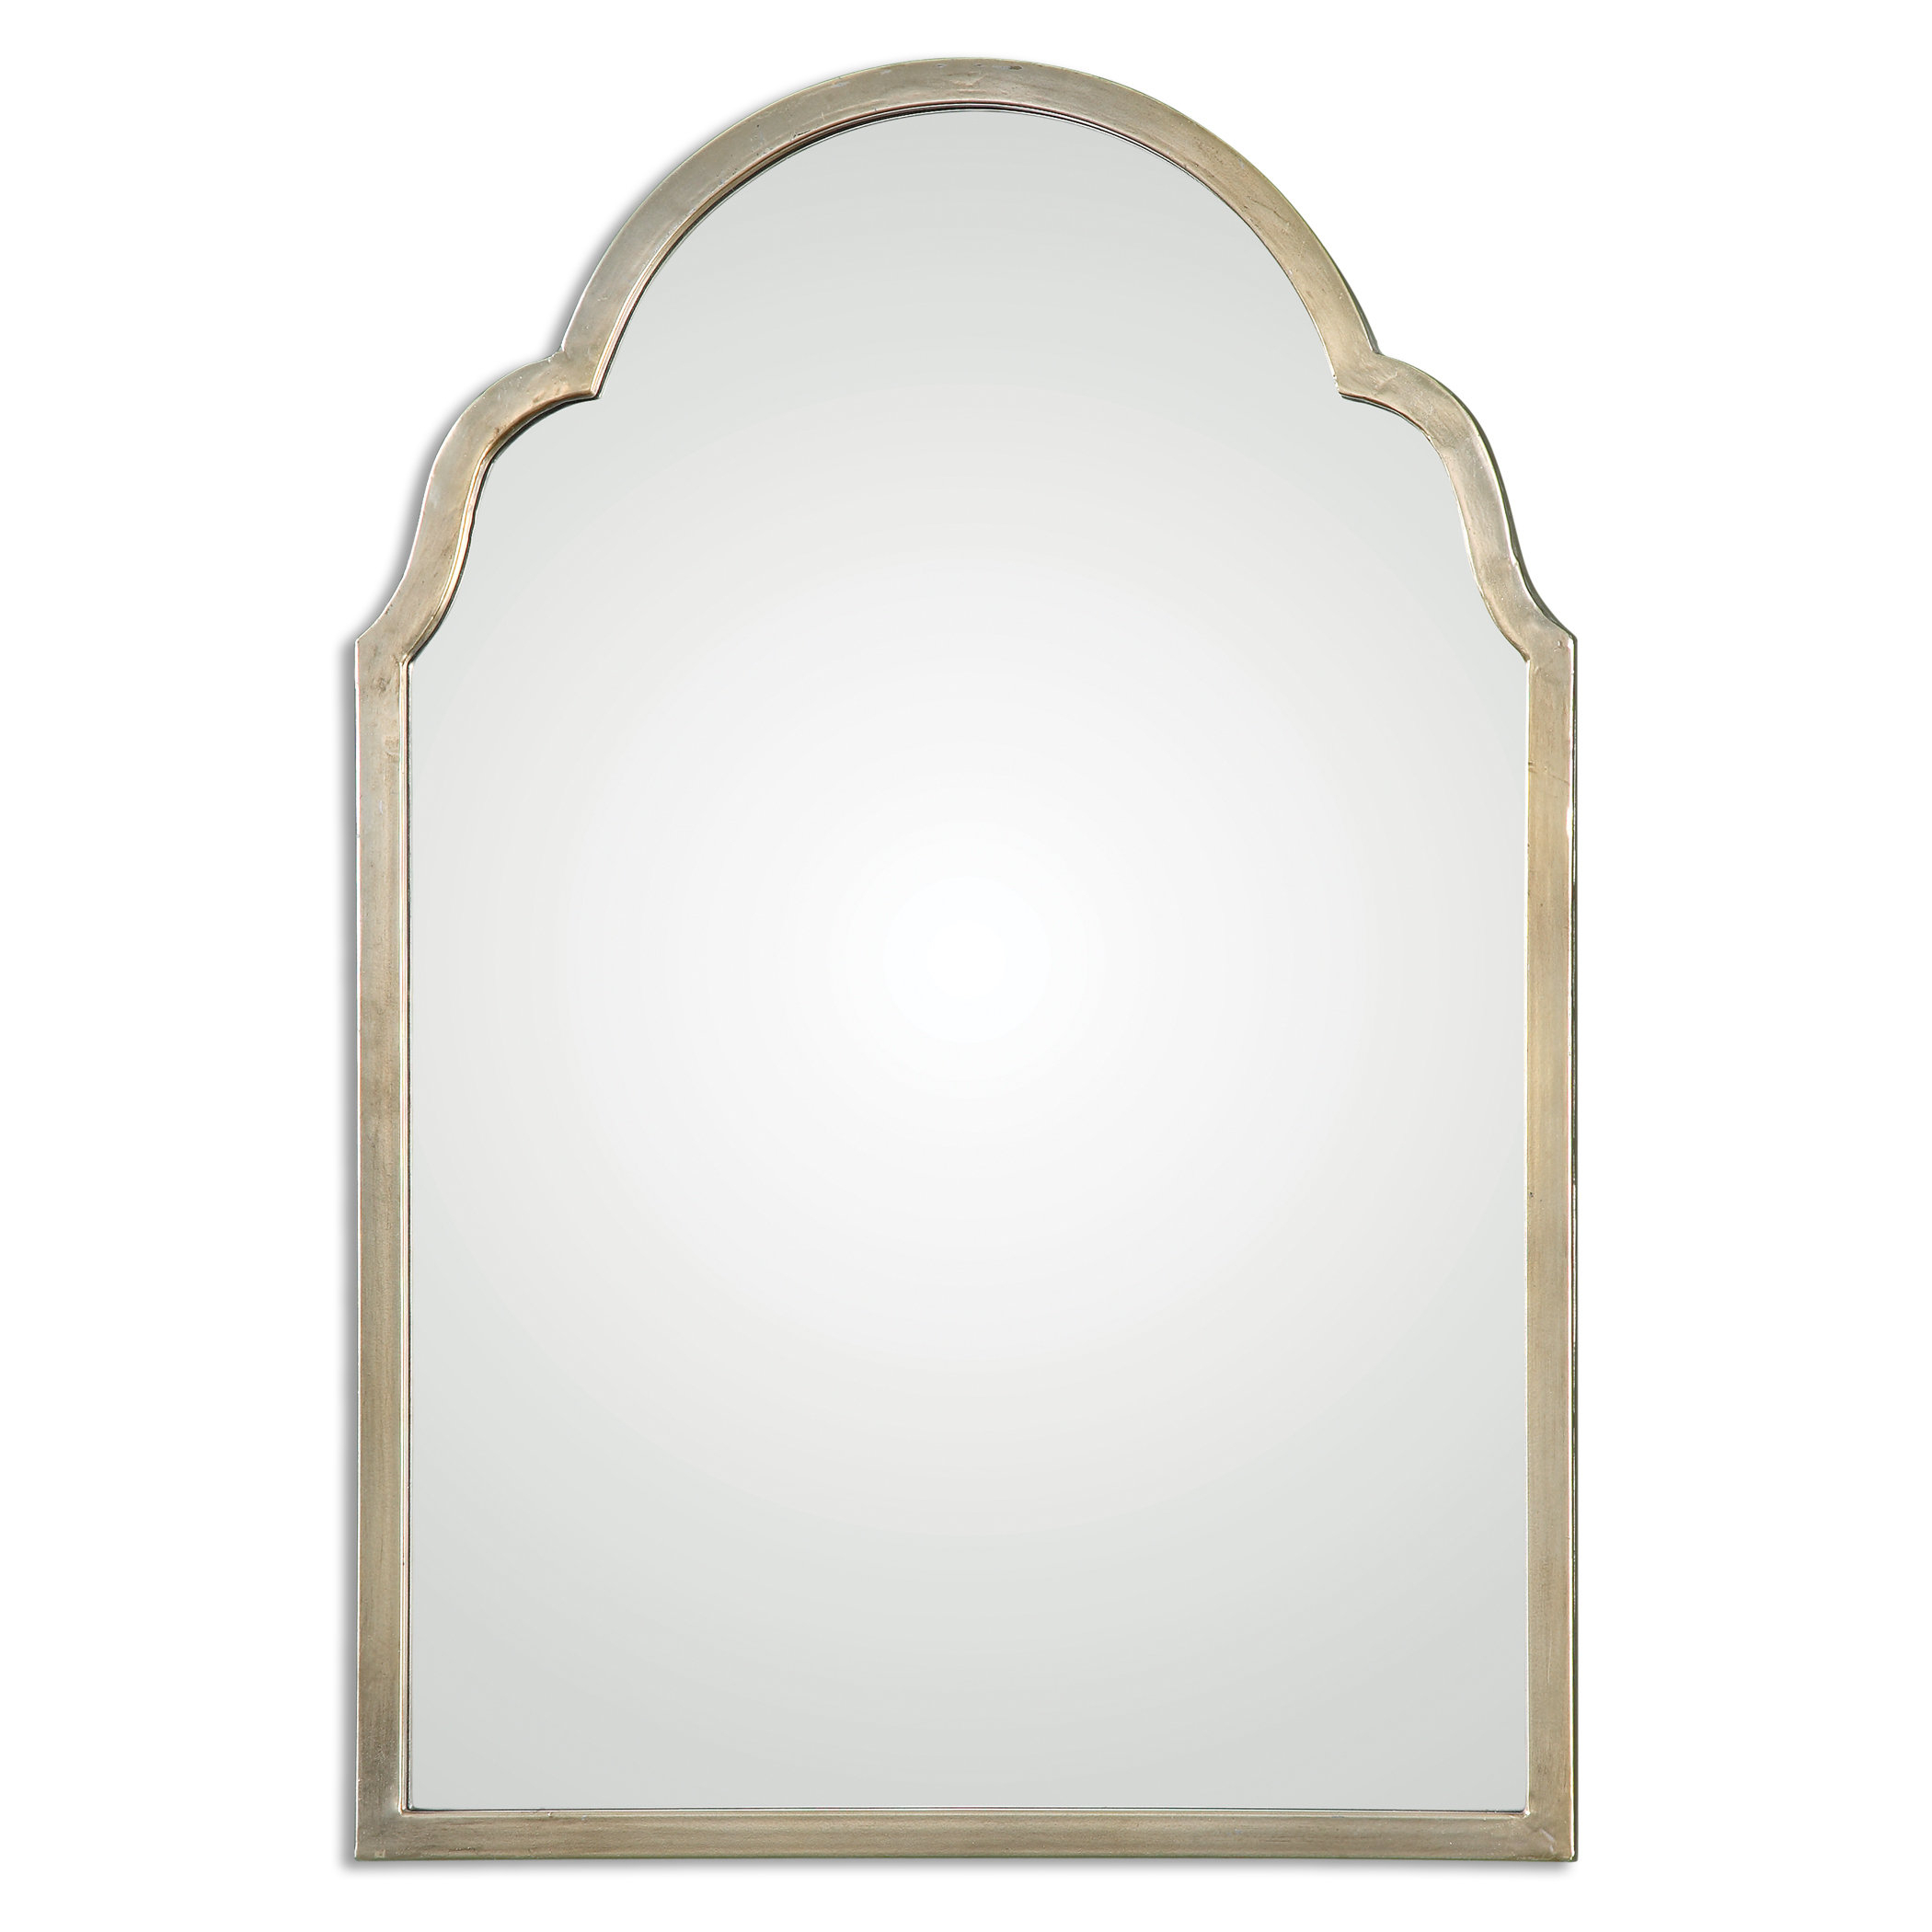 Farmhouse & Rustic Arch / Crowned Top Wall & Accent Mirrors within Arch Vertical Wall Mirrors (Image 18 of 30)